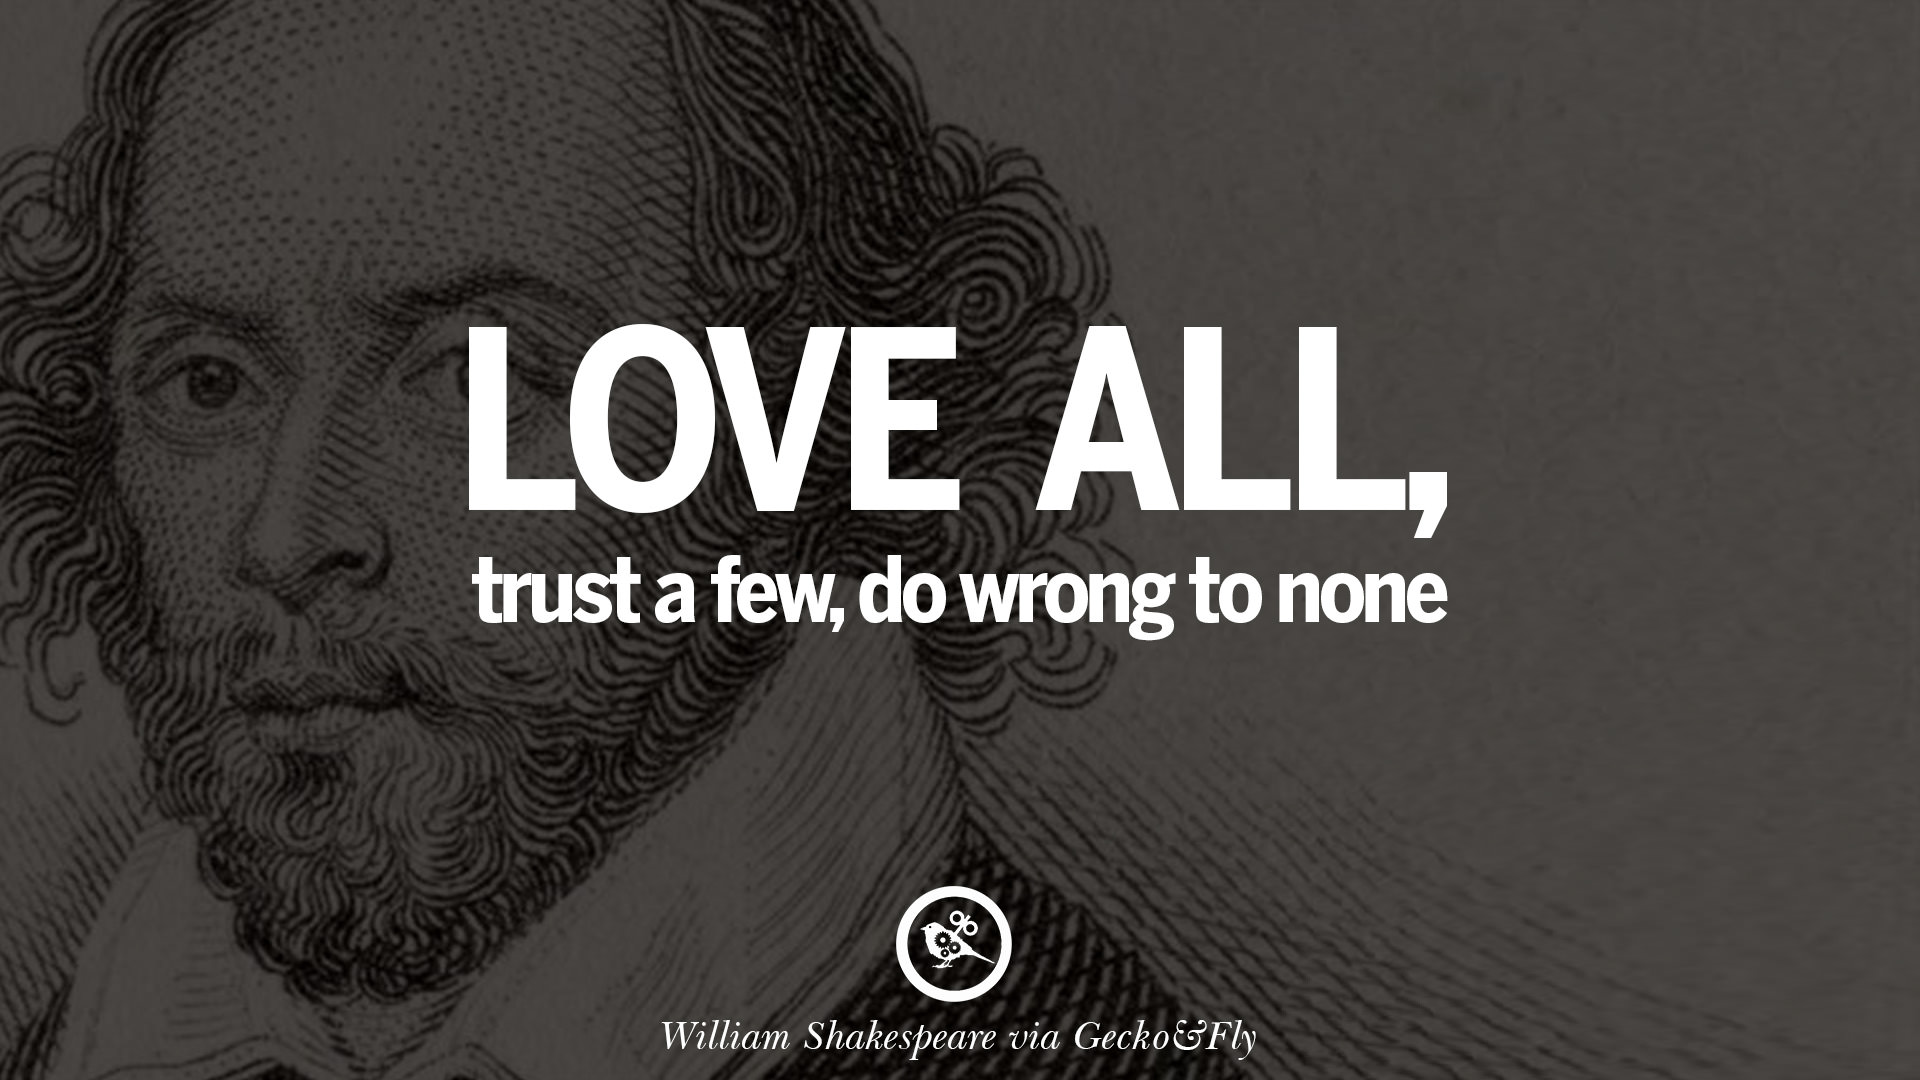 Shakespeare Quotes About Love 30 William Shakespeare Quotes About Love Life Friendship And